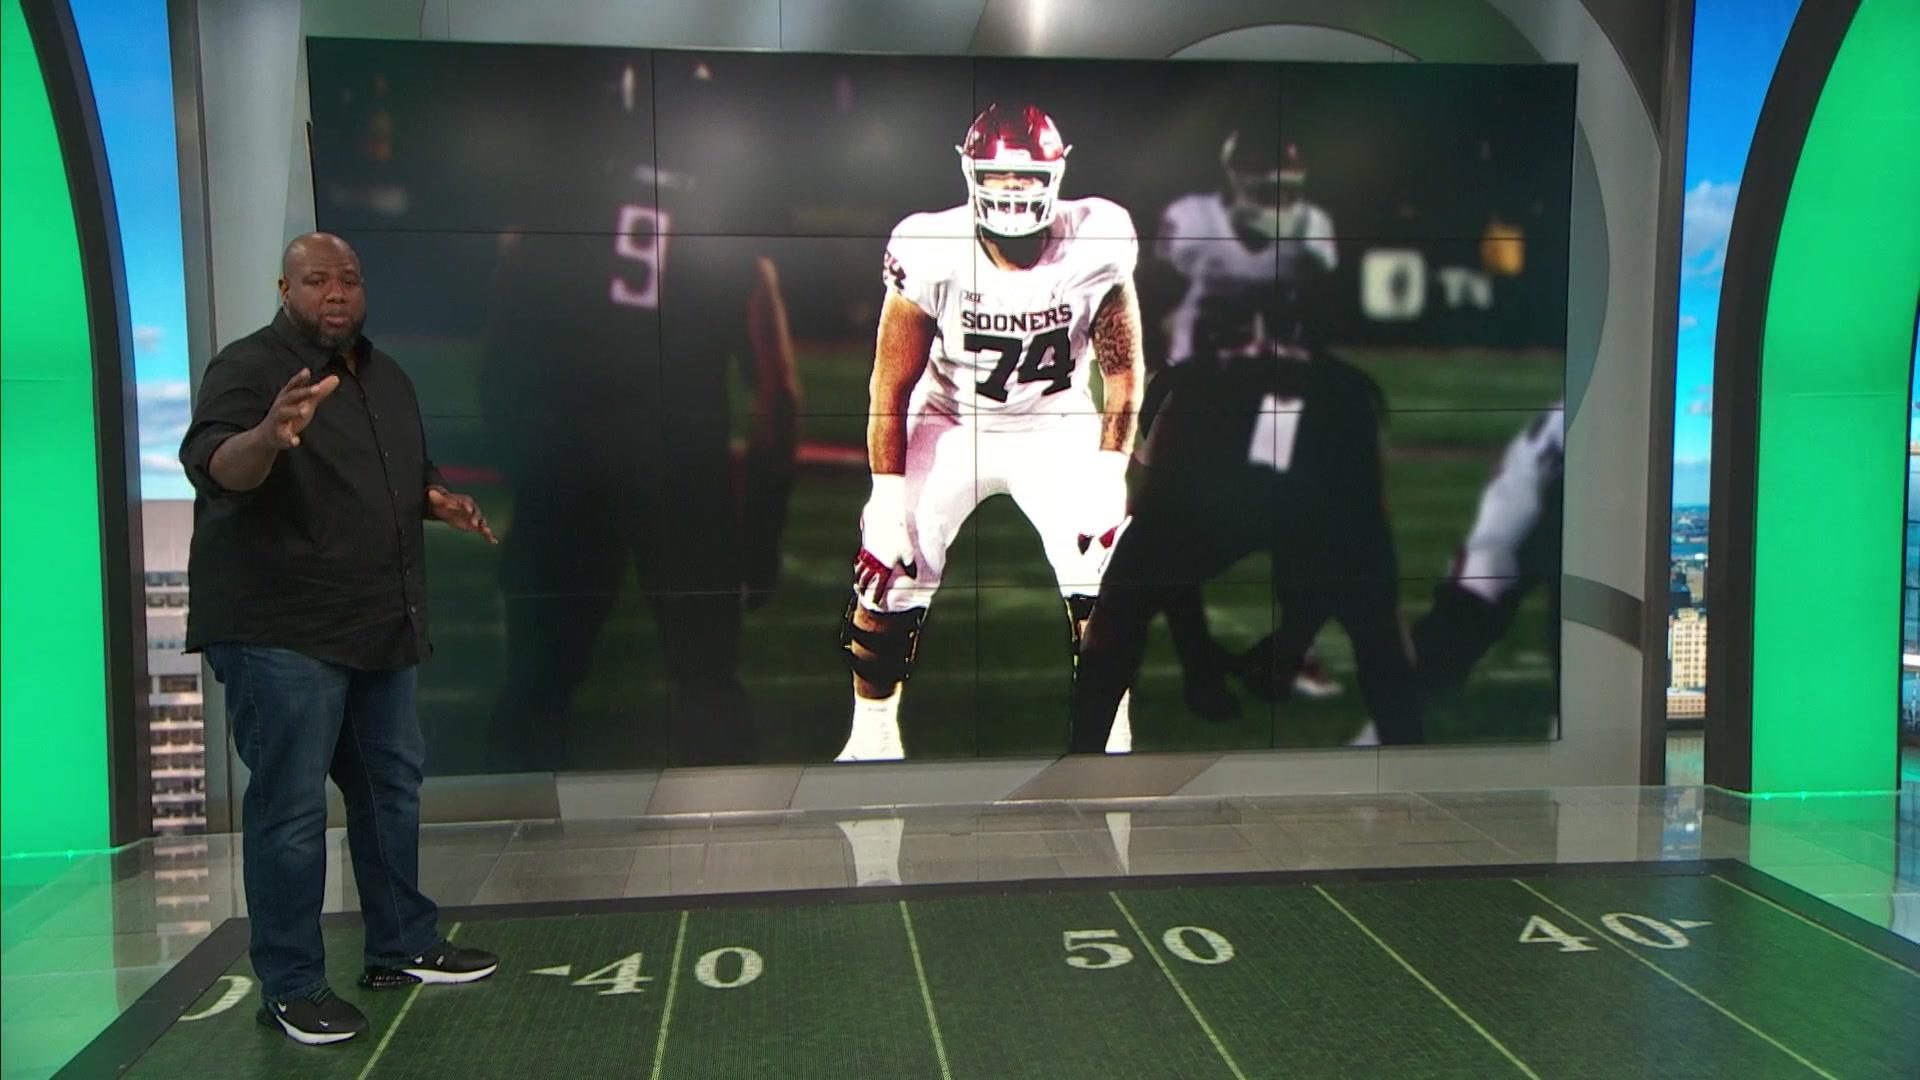 Why Oklahoma tackle Cody Ford could be an option for Eagles in Round 1